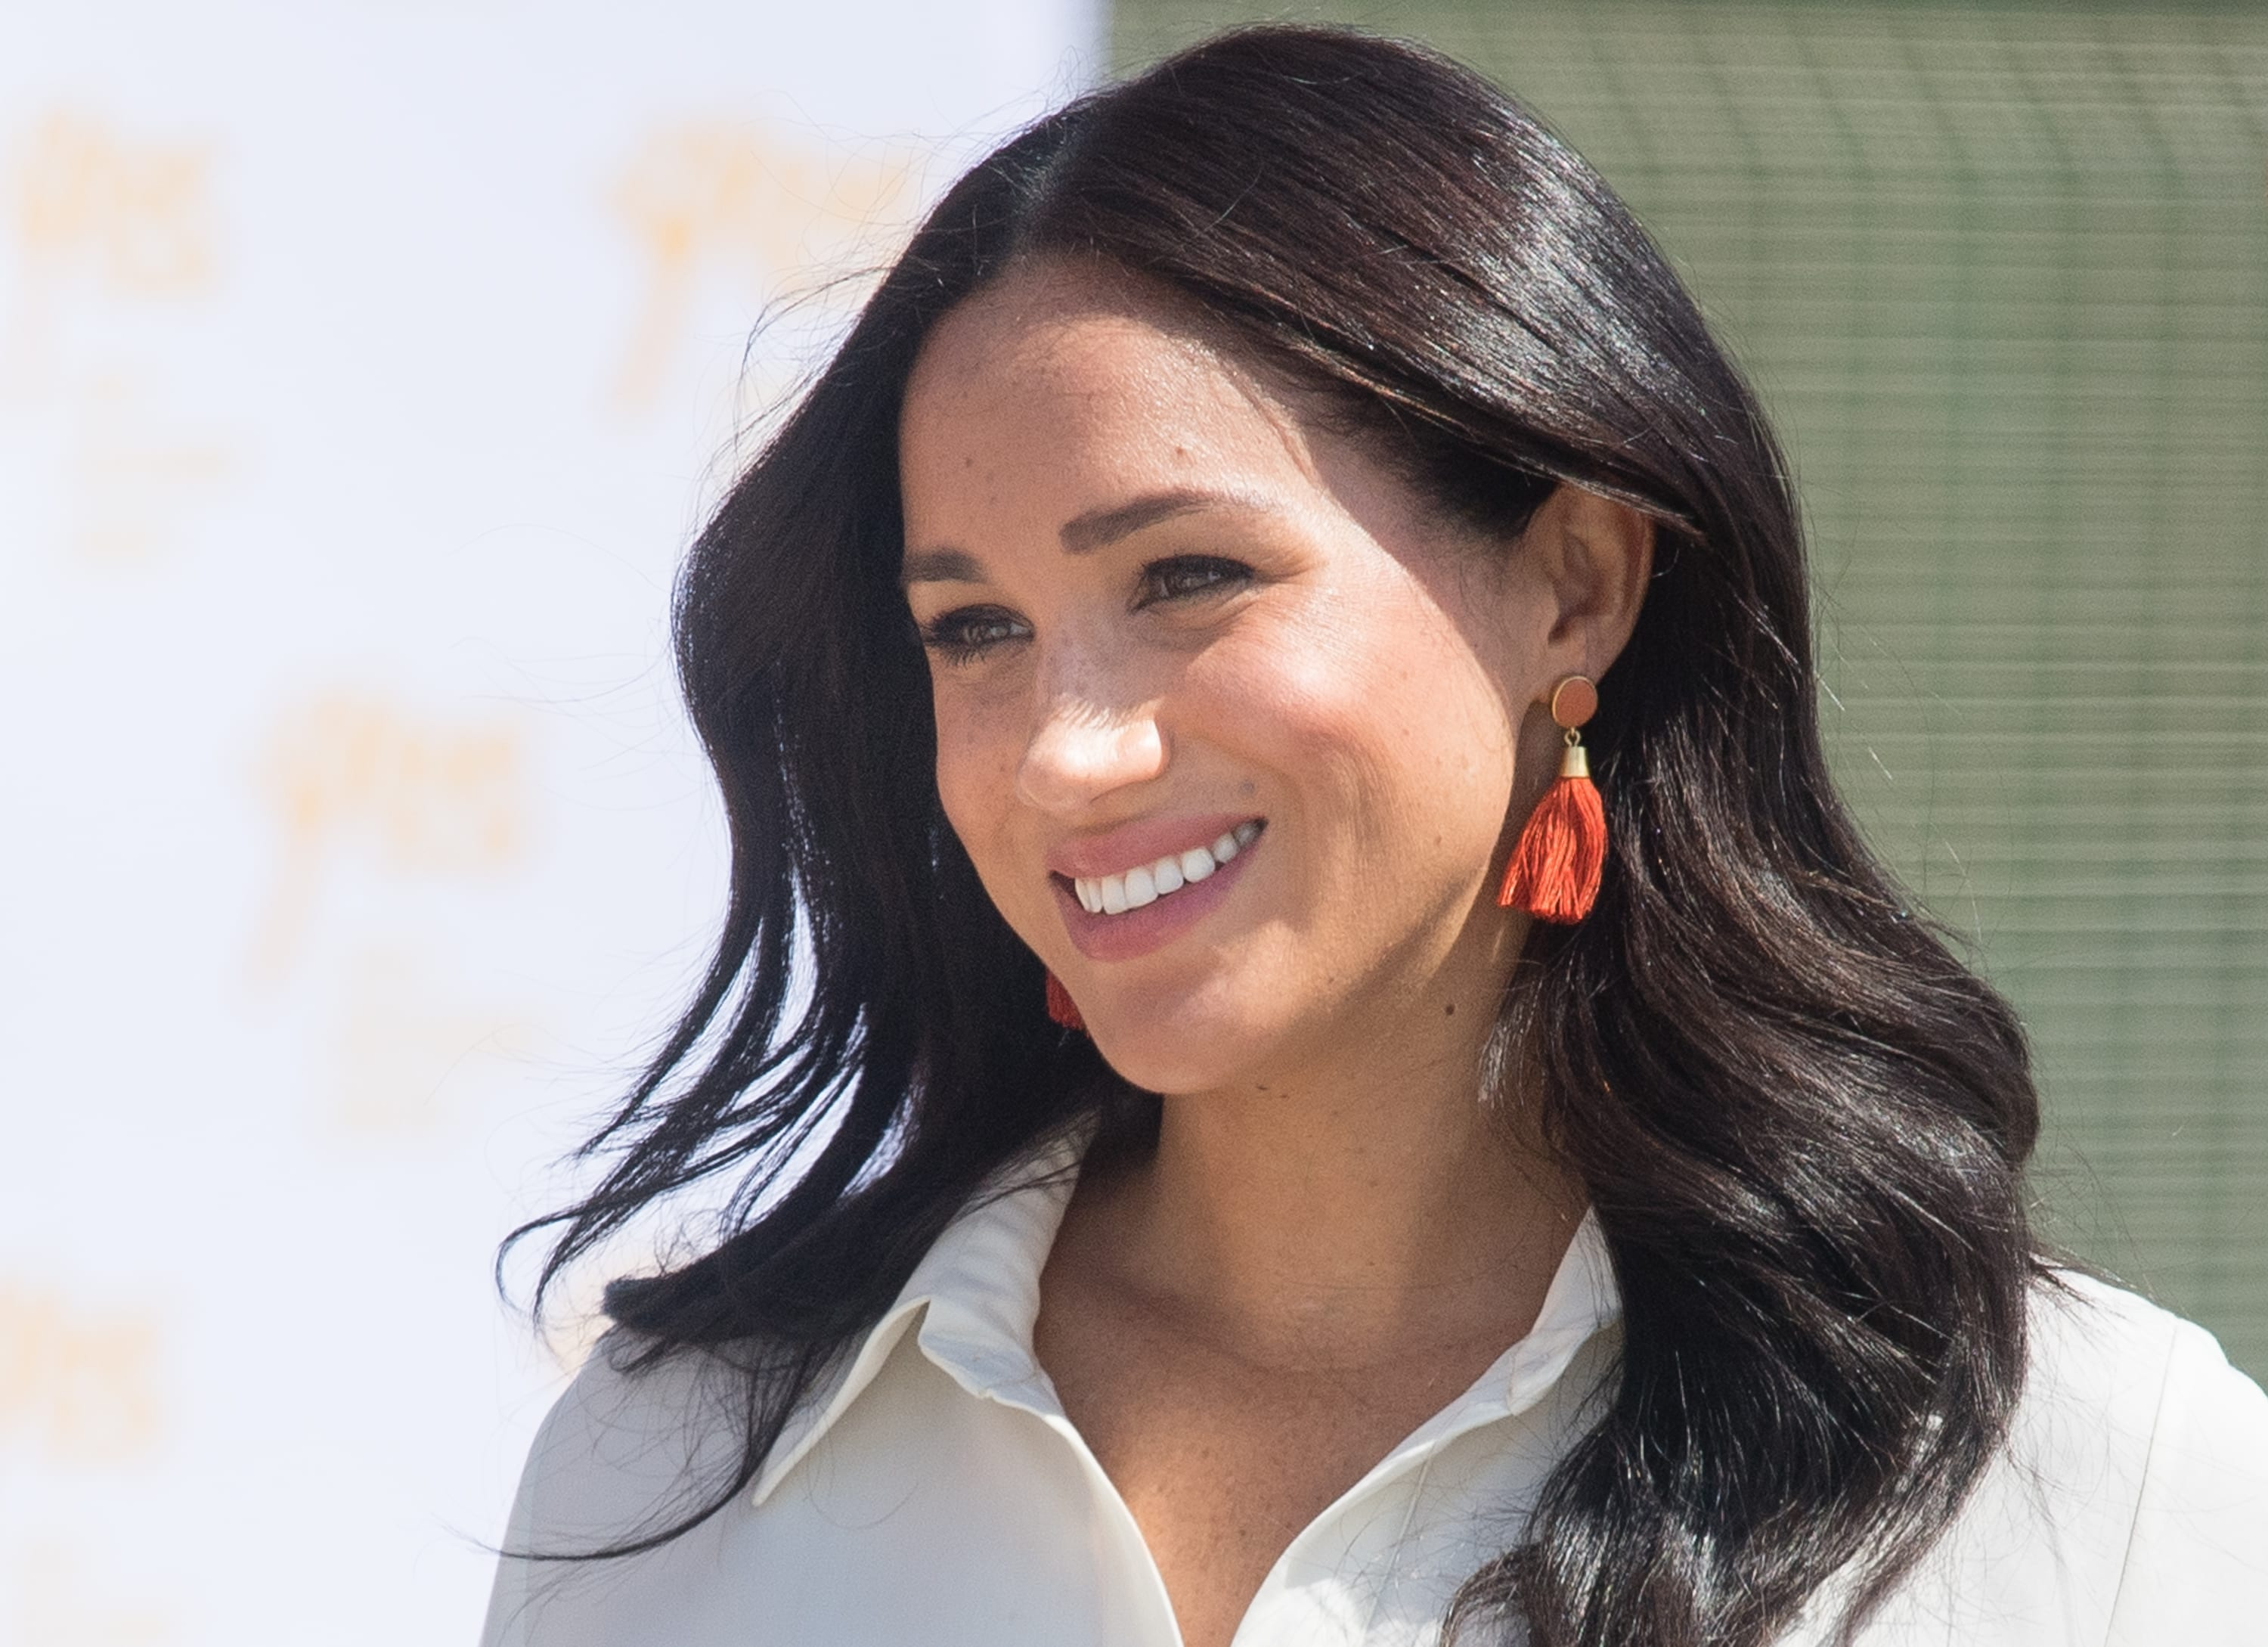 Meghan Markle Wants to Celebrate Her Birthday in Montecito